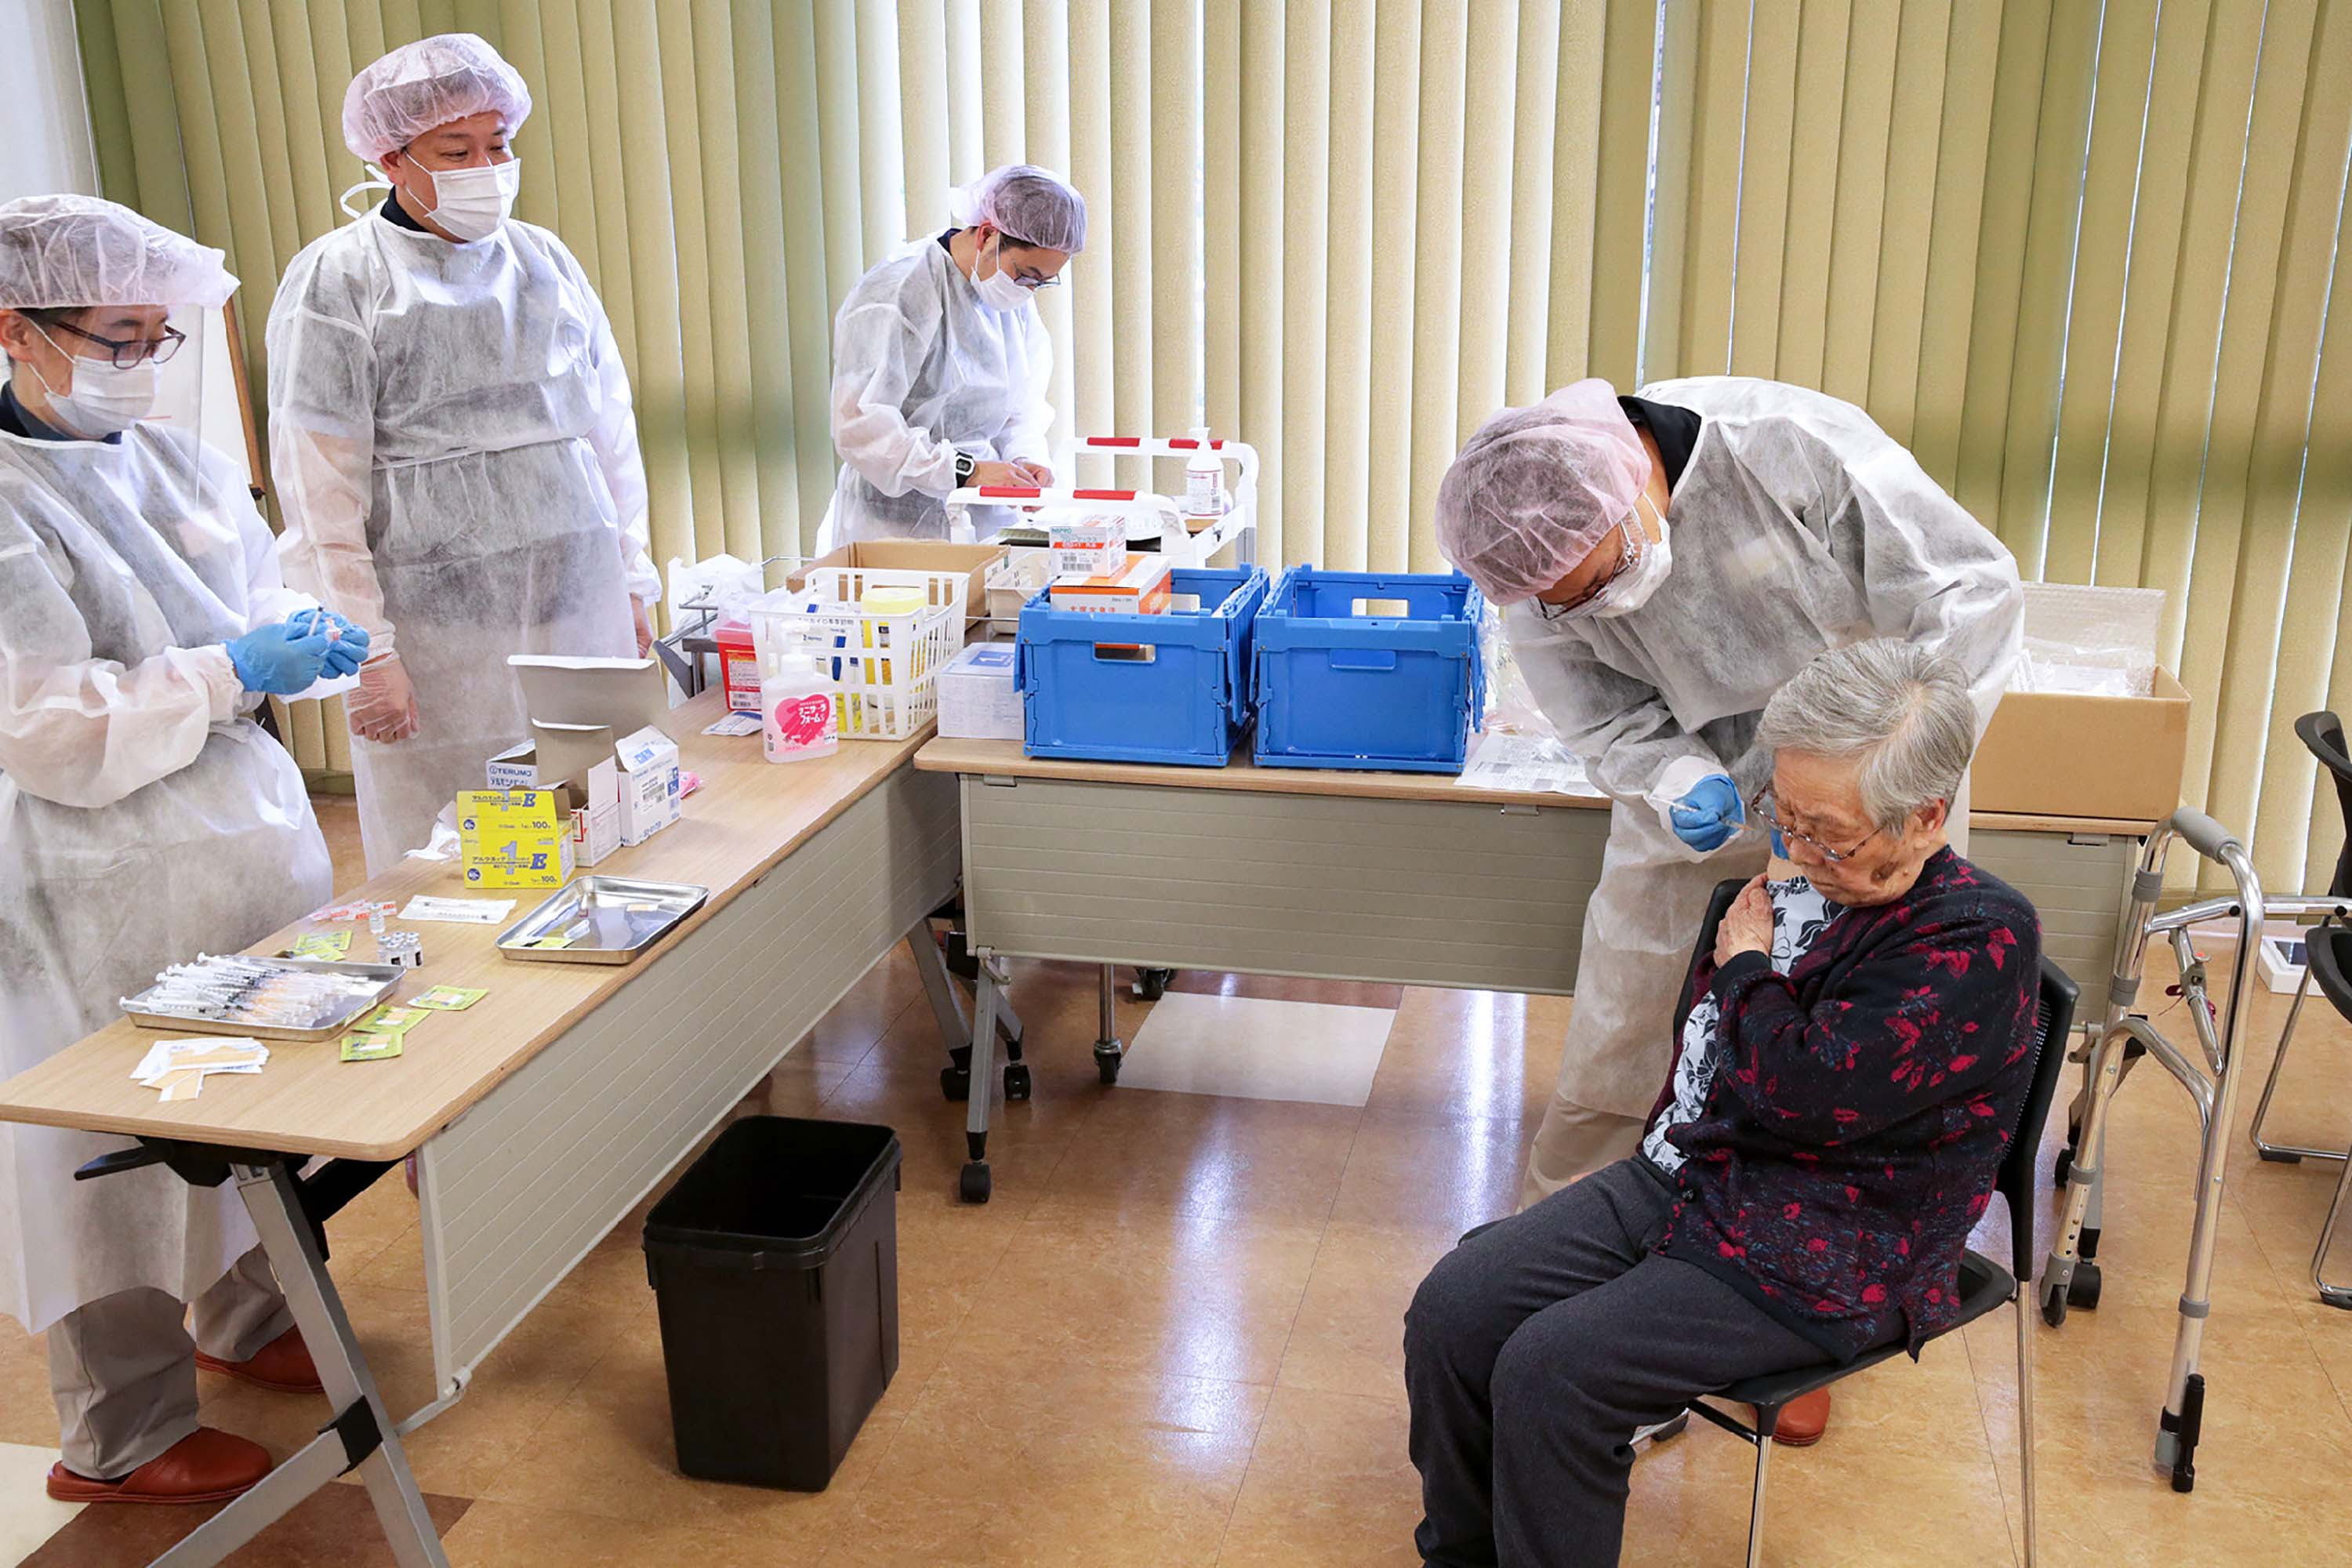 An elderly woman receives a dose of the Covid-19 vaccine in Tokyo on April 12.